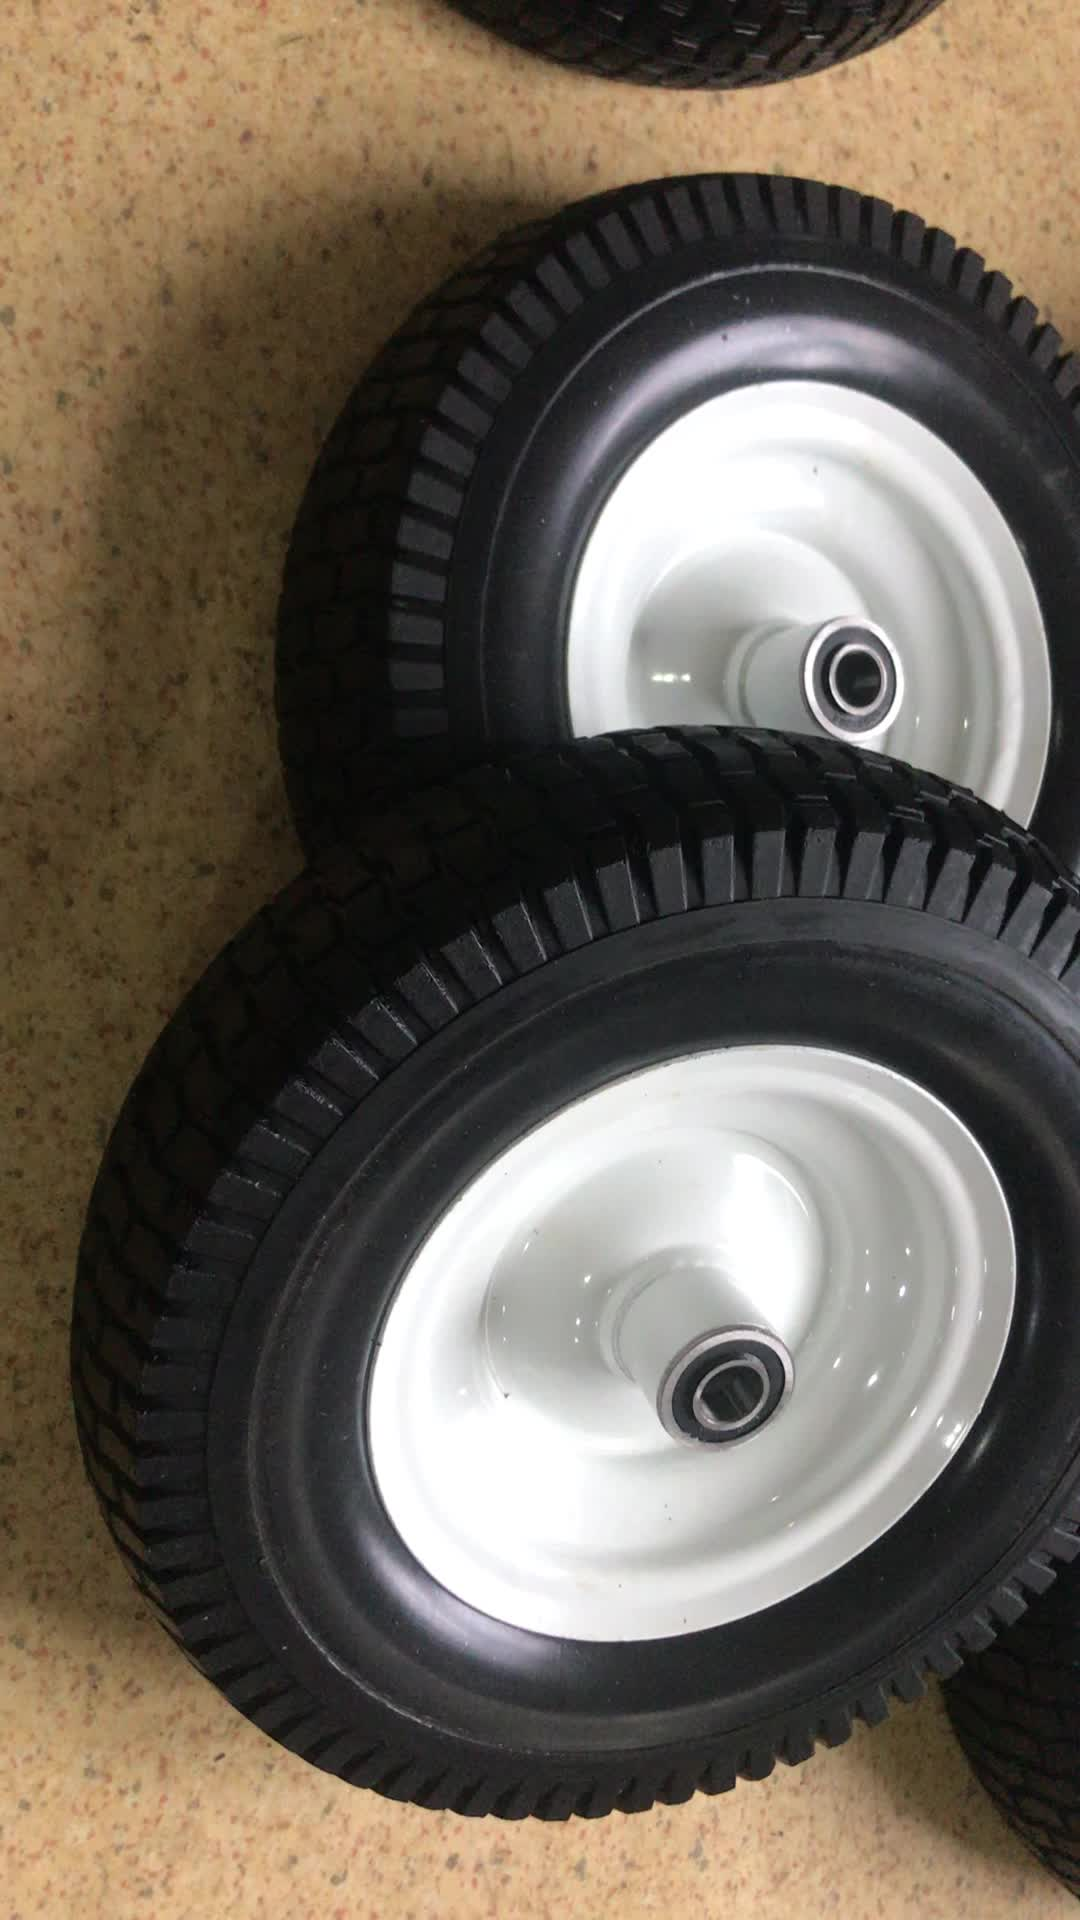 13x5.00-6 PU Solid Lawn Mower Mud Tires Off Road